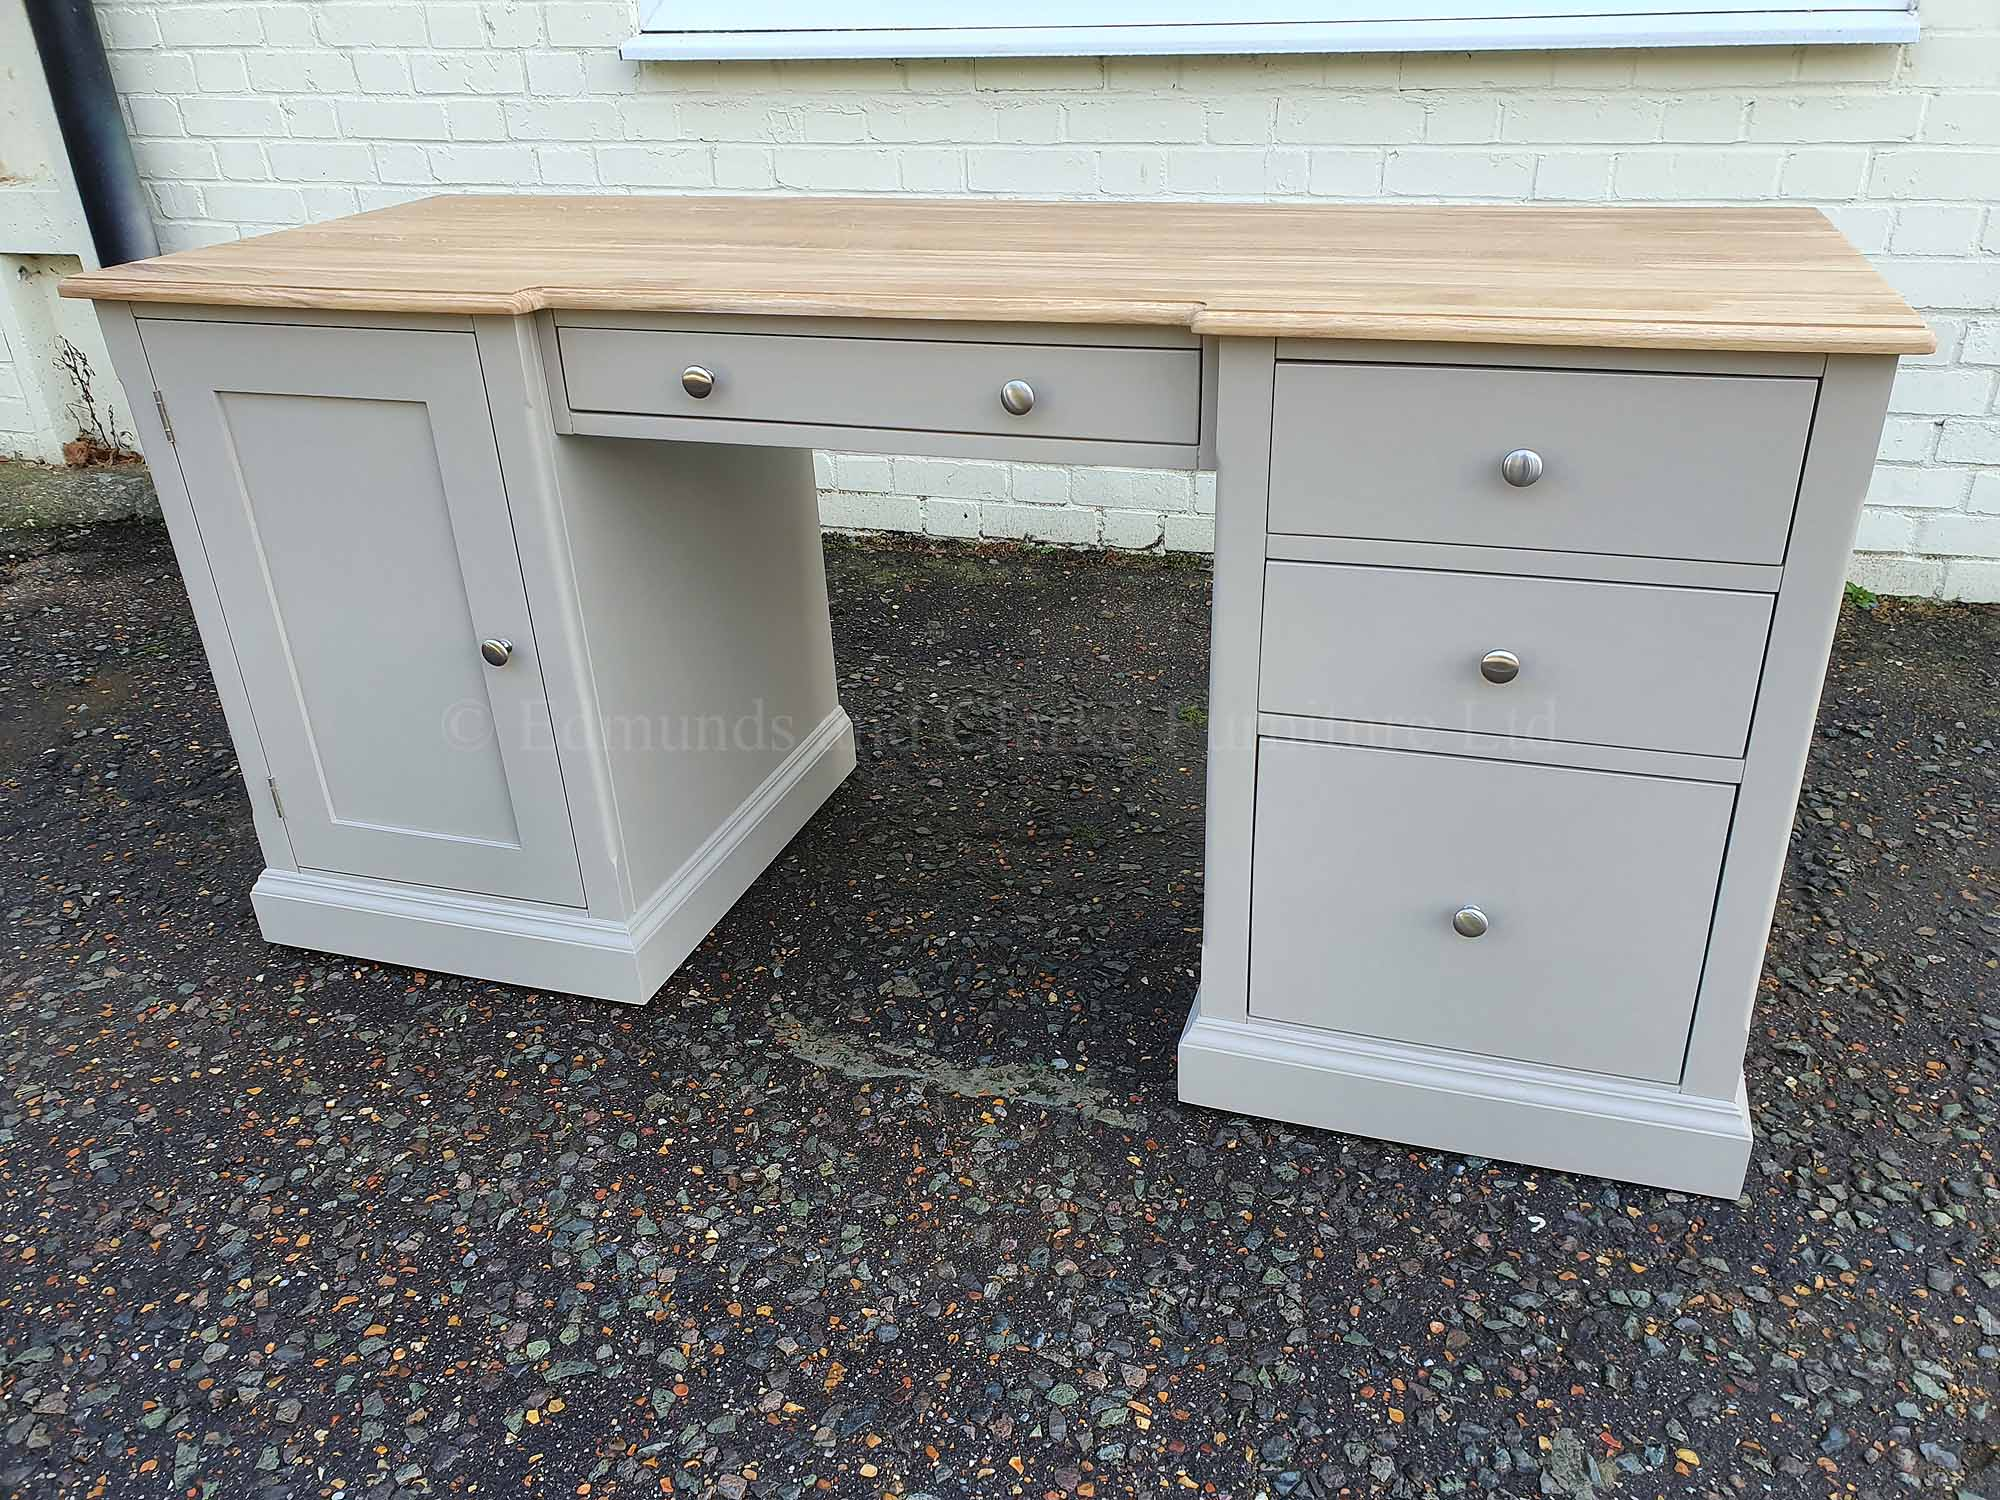 Office desk with cupboard and drawers, painted grey with oiled oak top